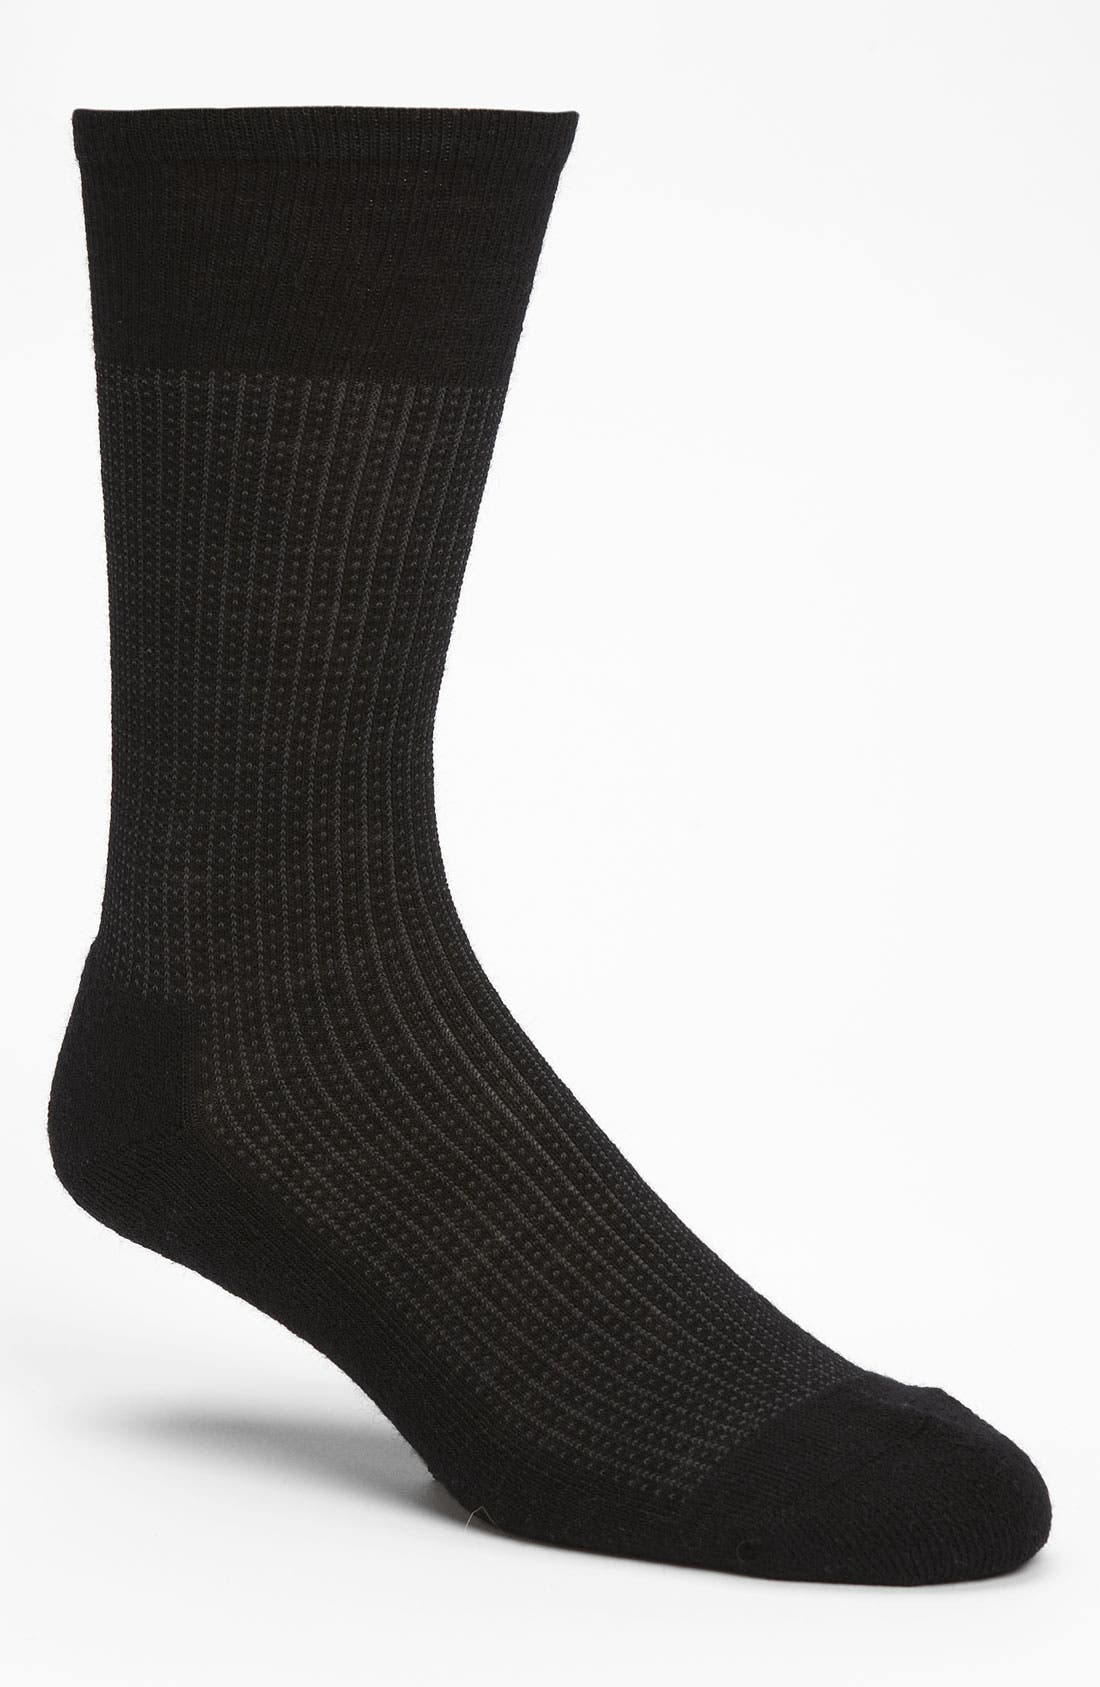 Alternate Image 1 Selected - Smartwool 'Nailhead' Grid Socks (Men)